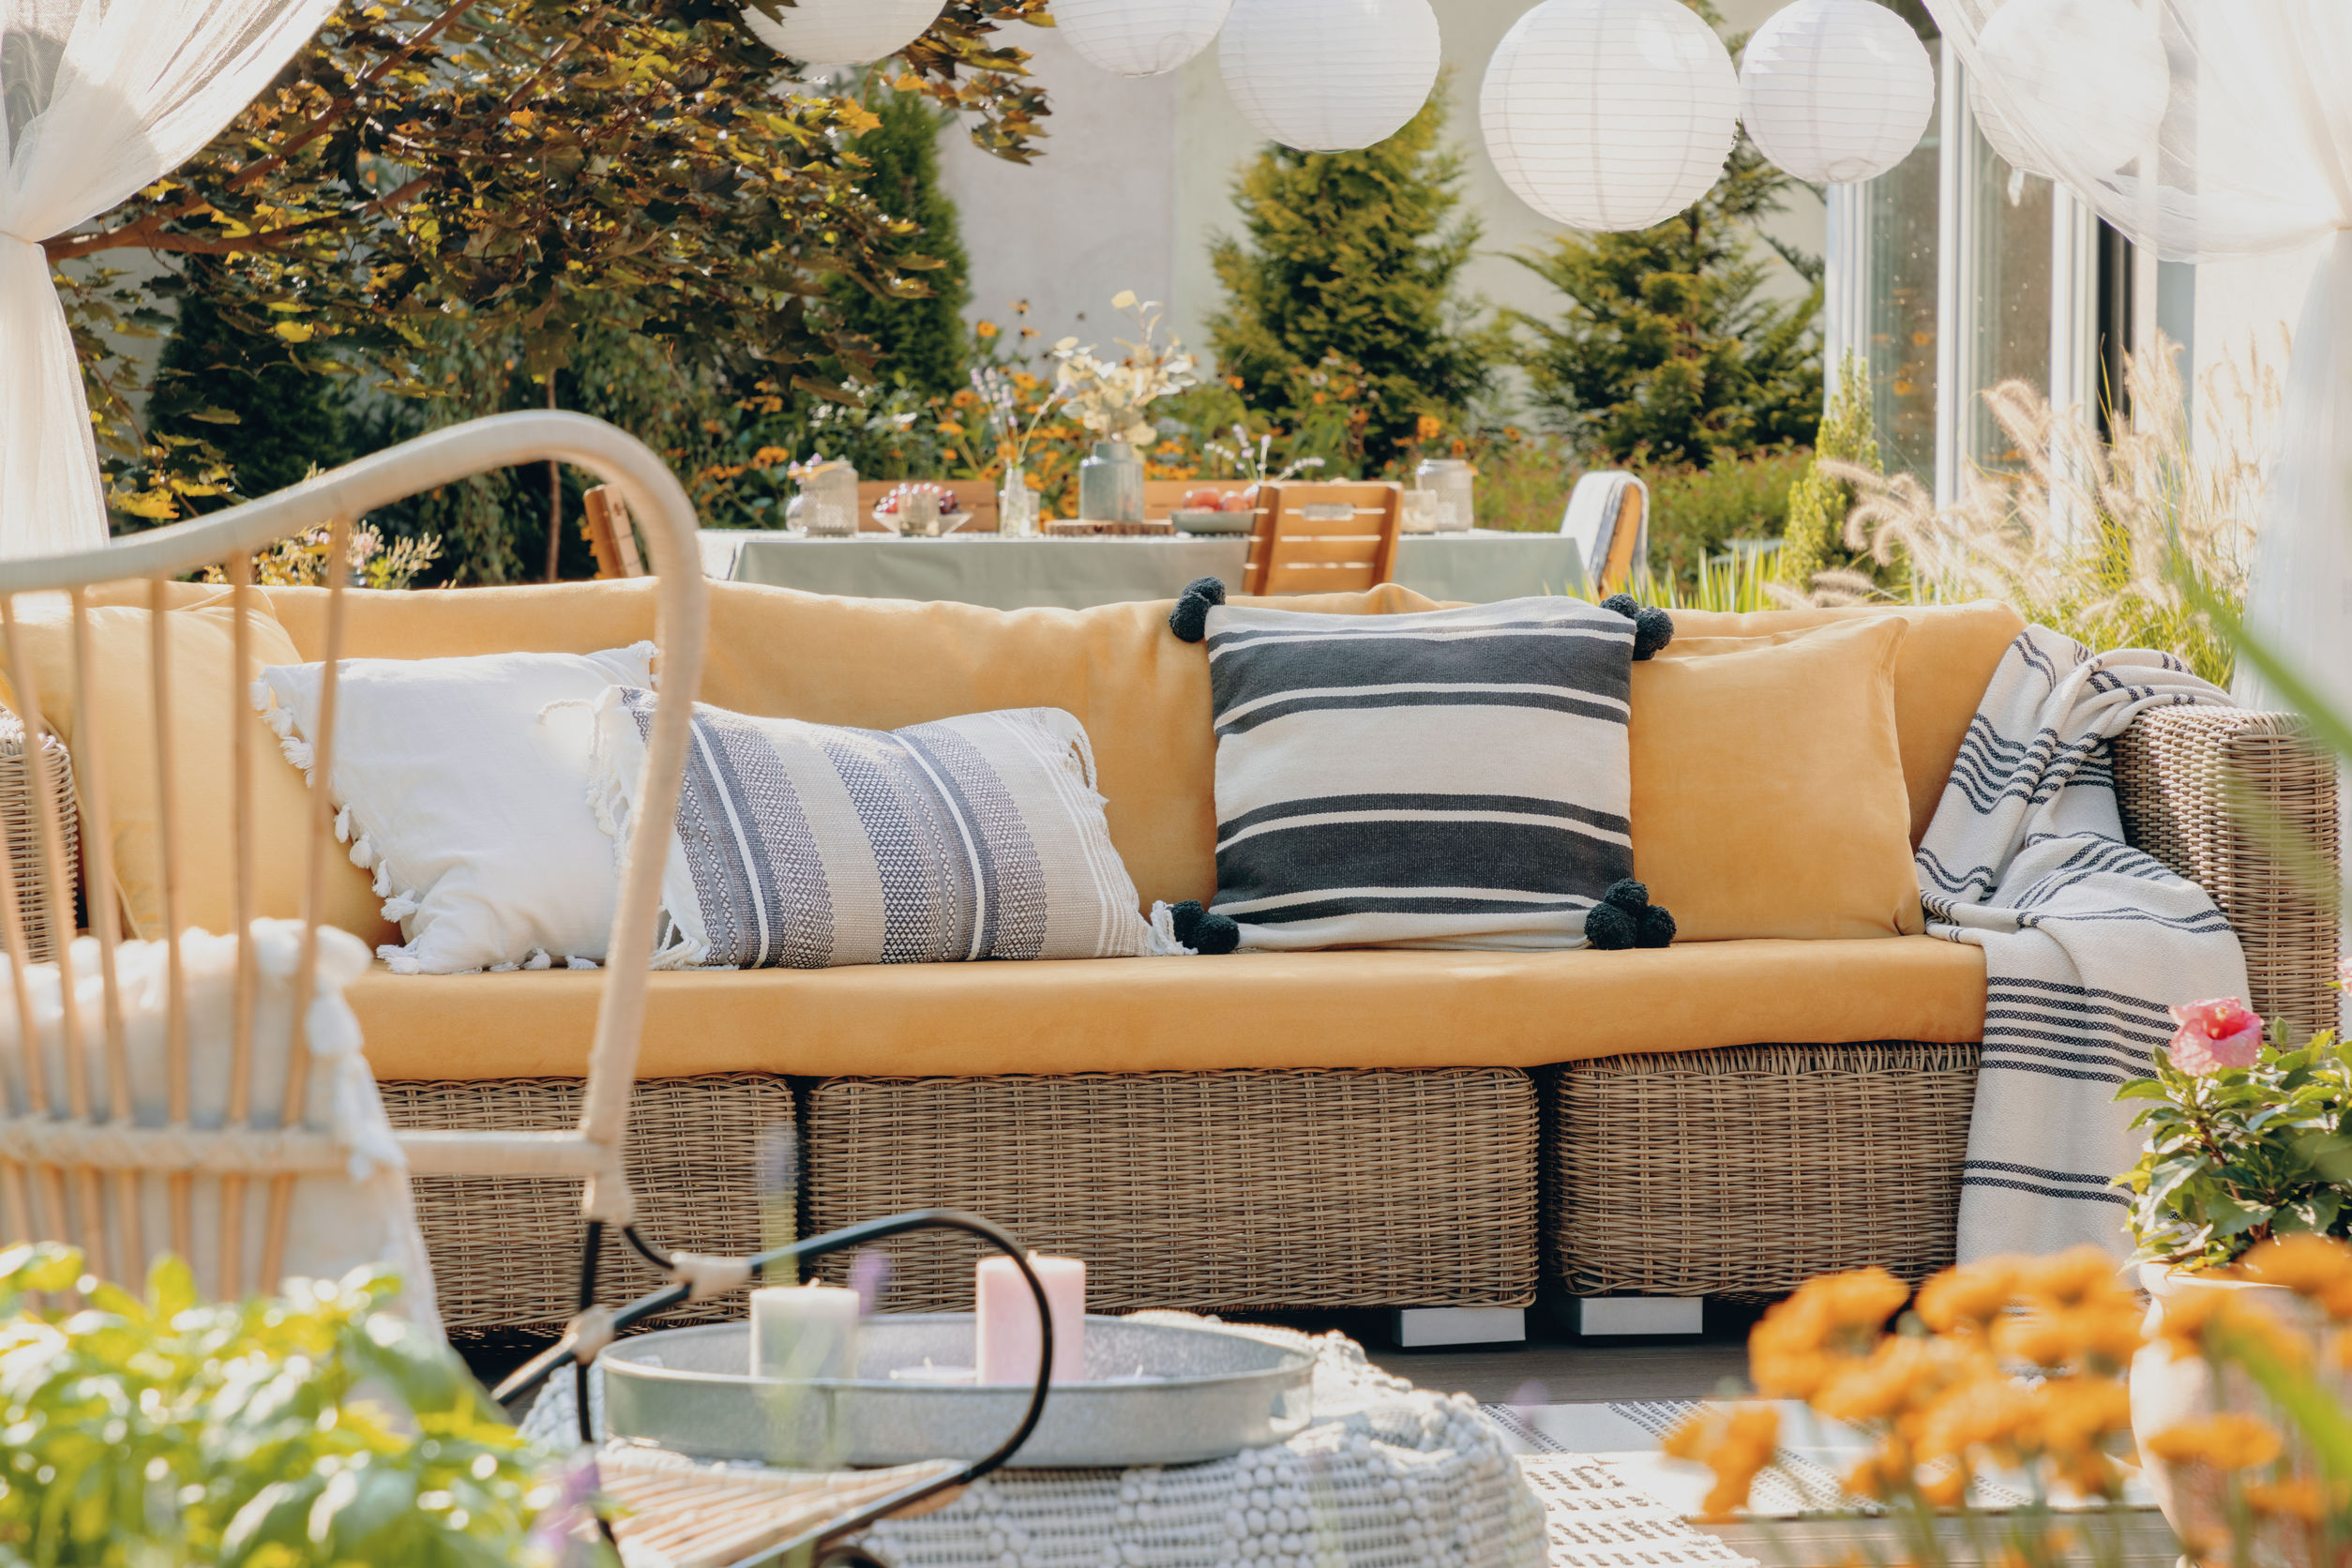 Finding the Perfect Fit: How to Measure Patio Furniture for Cushions